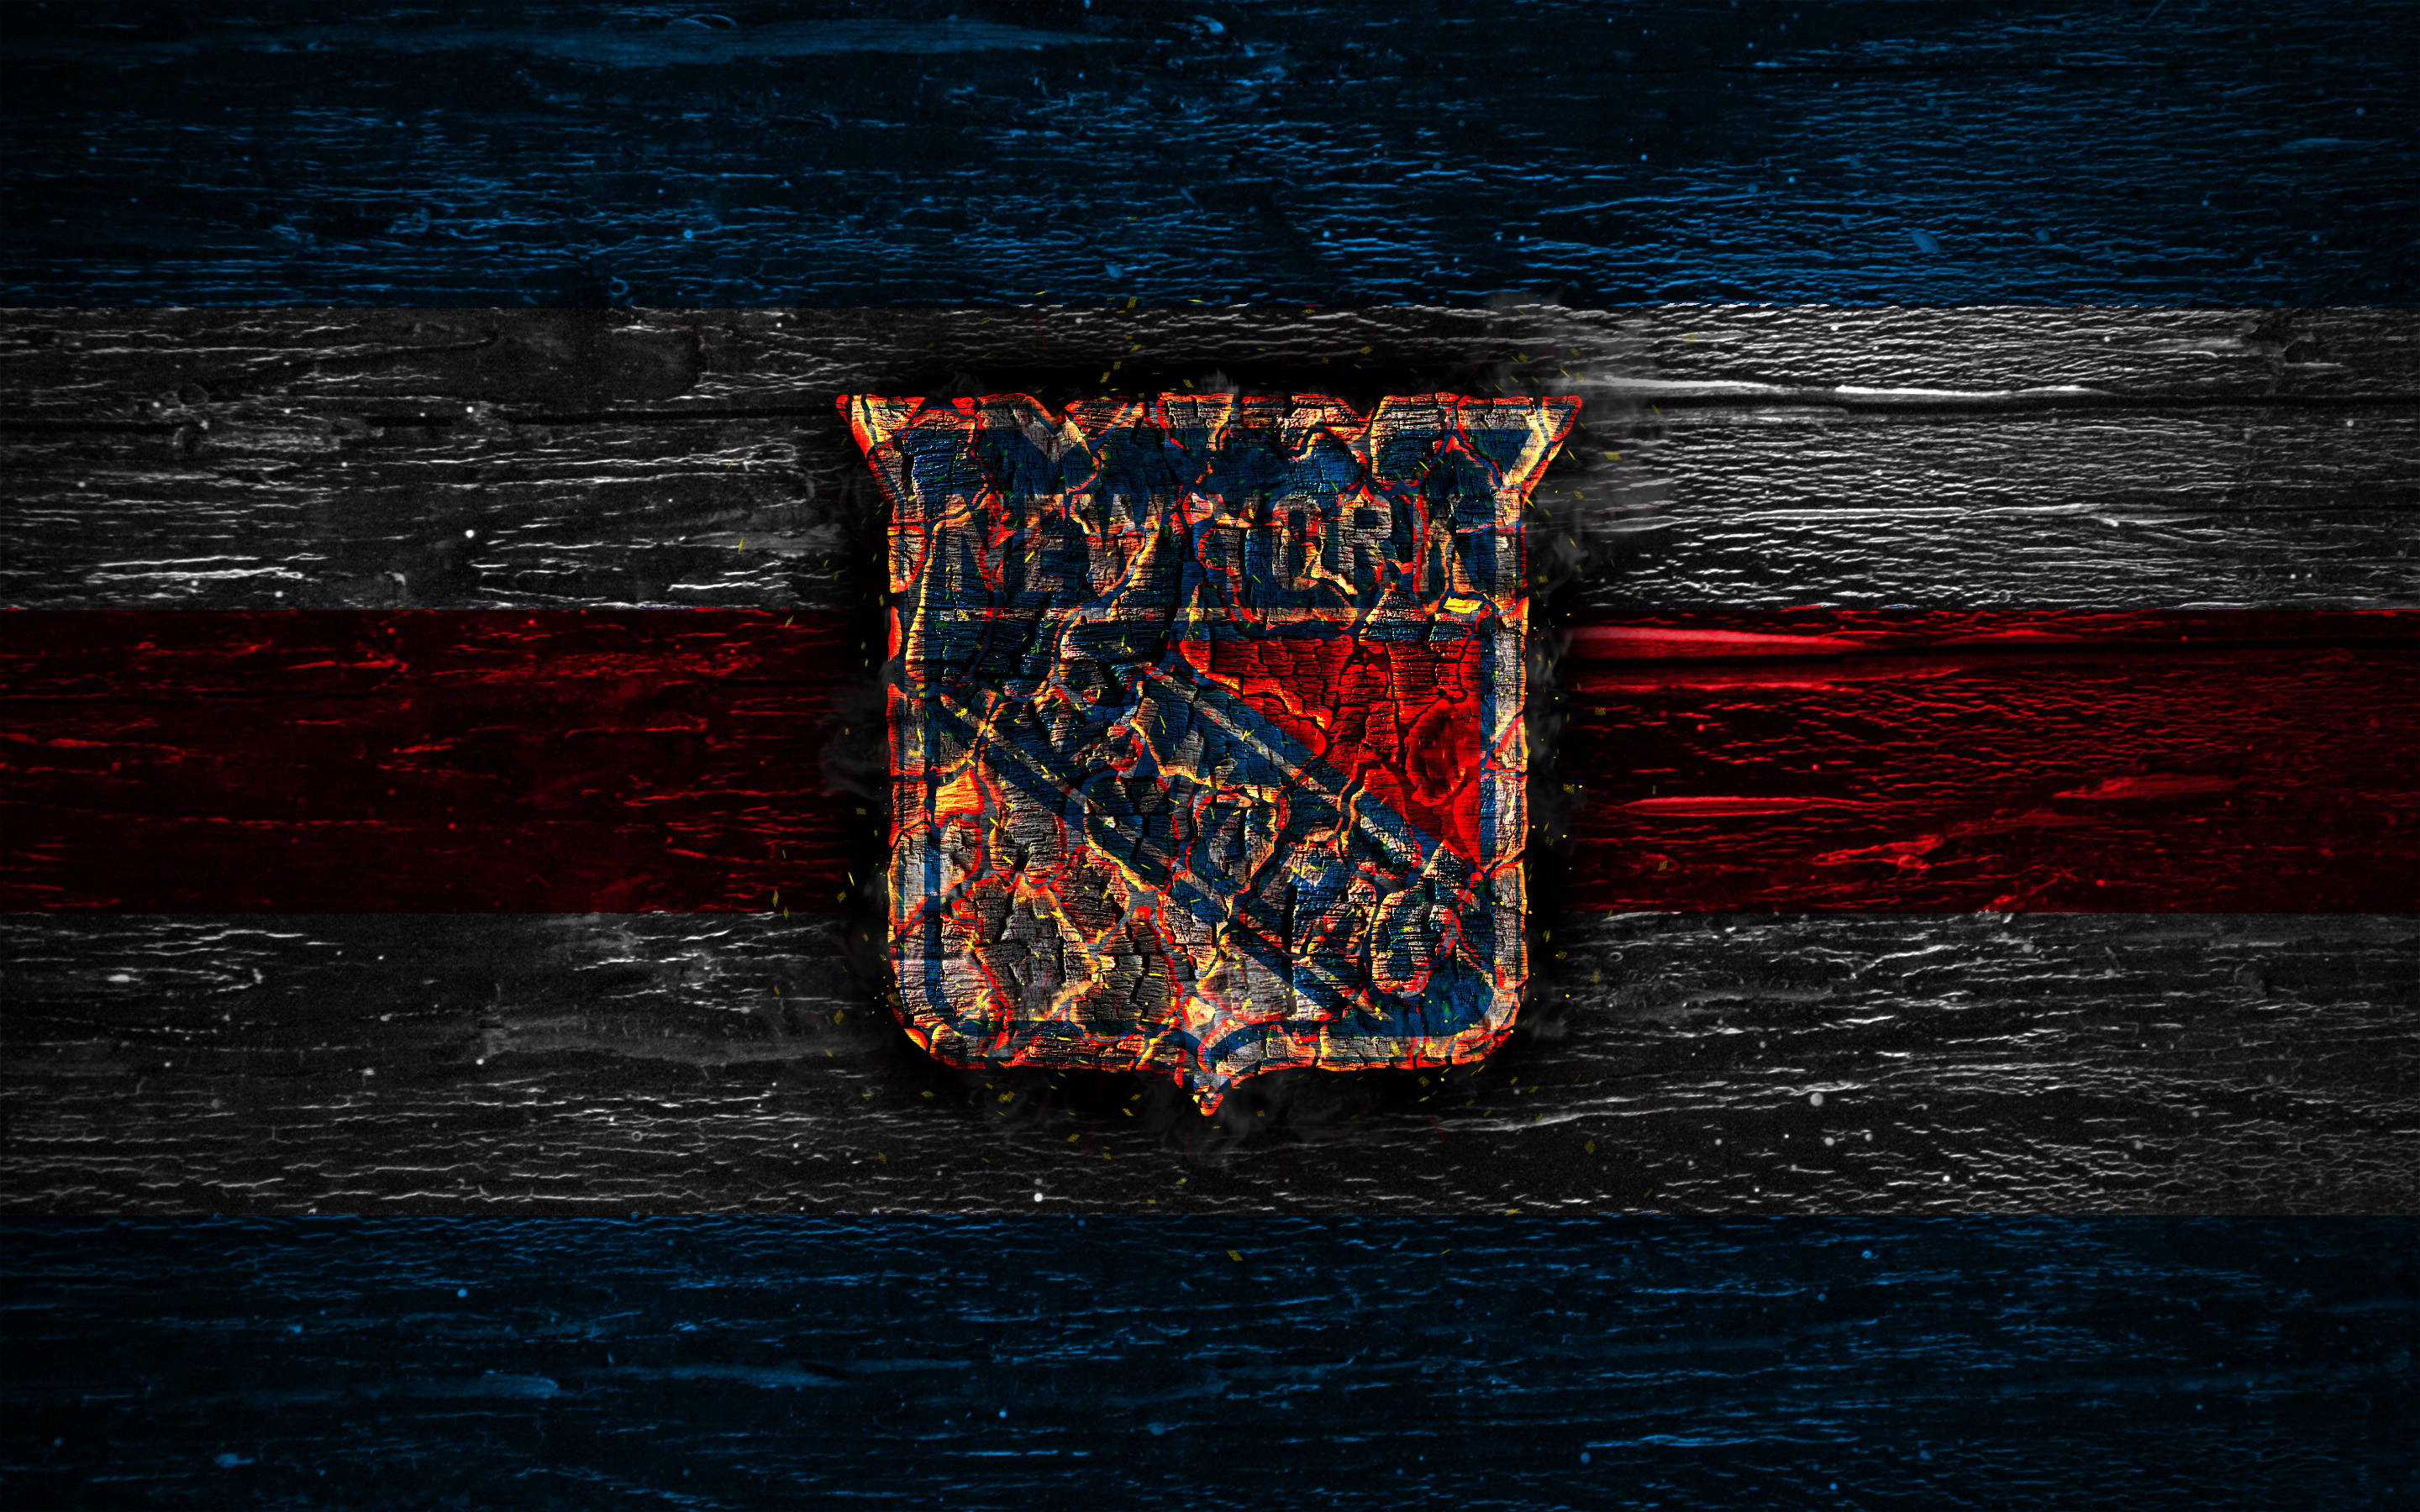 New York Rangers Hd Wallpaper Background Image 2880x1800 Id